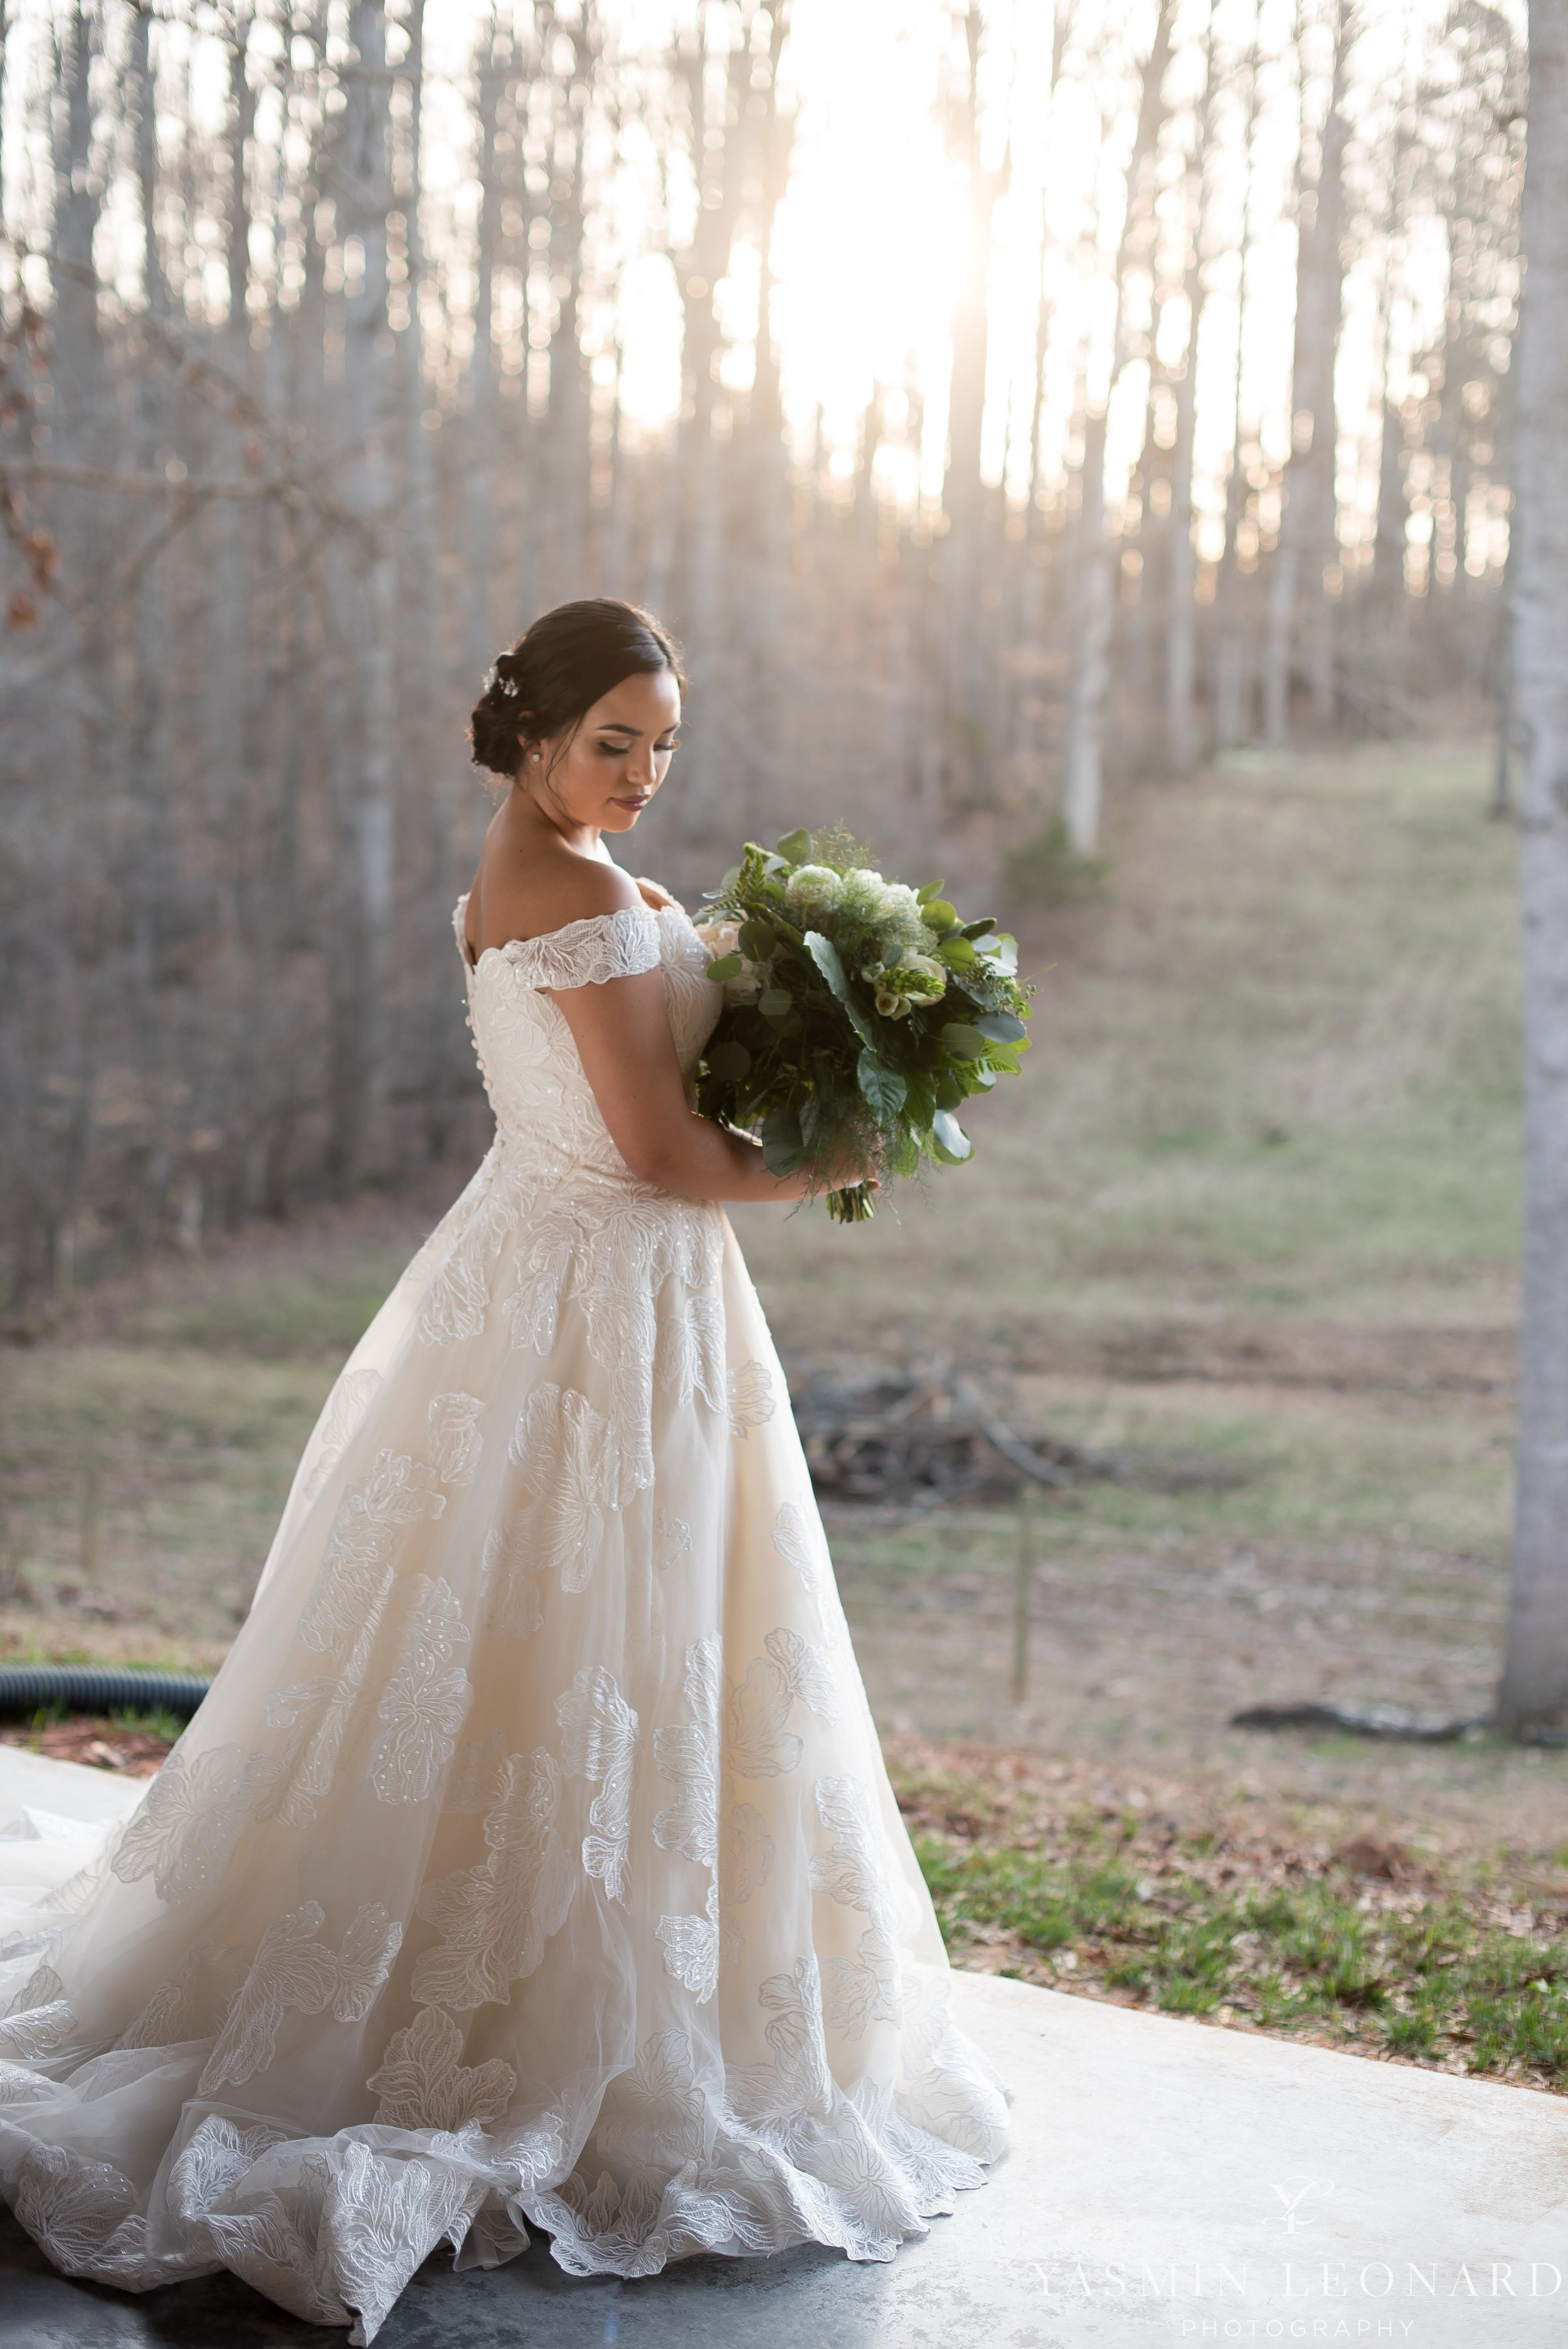 Old Homeplace Vineyard - Grits and Glitter - Dashing Dames Bridal Boutique - Just Priceless - Yasmin Leonard Photography - High Point Weddings - NC Weddings - NC Wedding Venues - High Point Jewelers - NC Wines - NC Vineyards - Cupcake Cuties-86.jpg